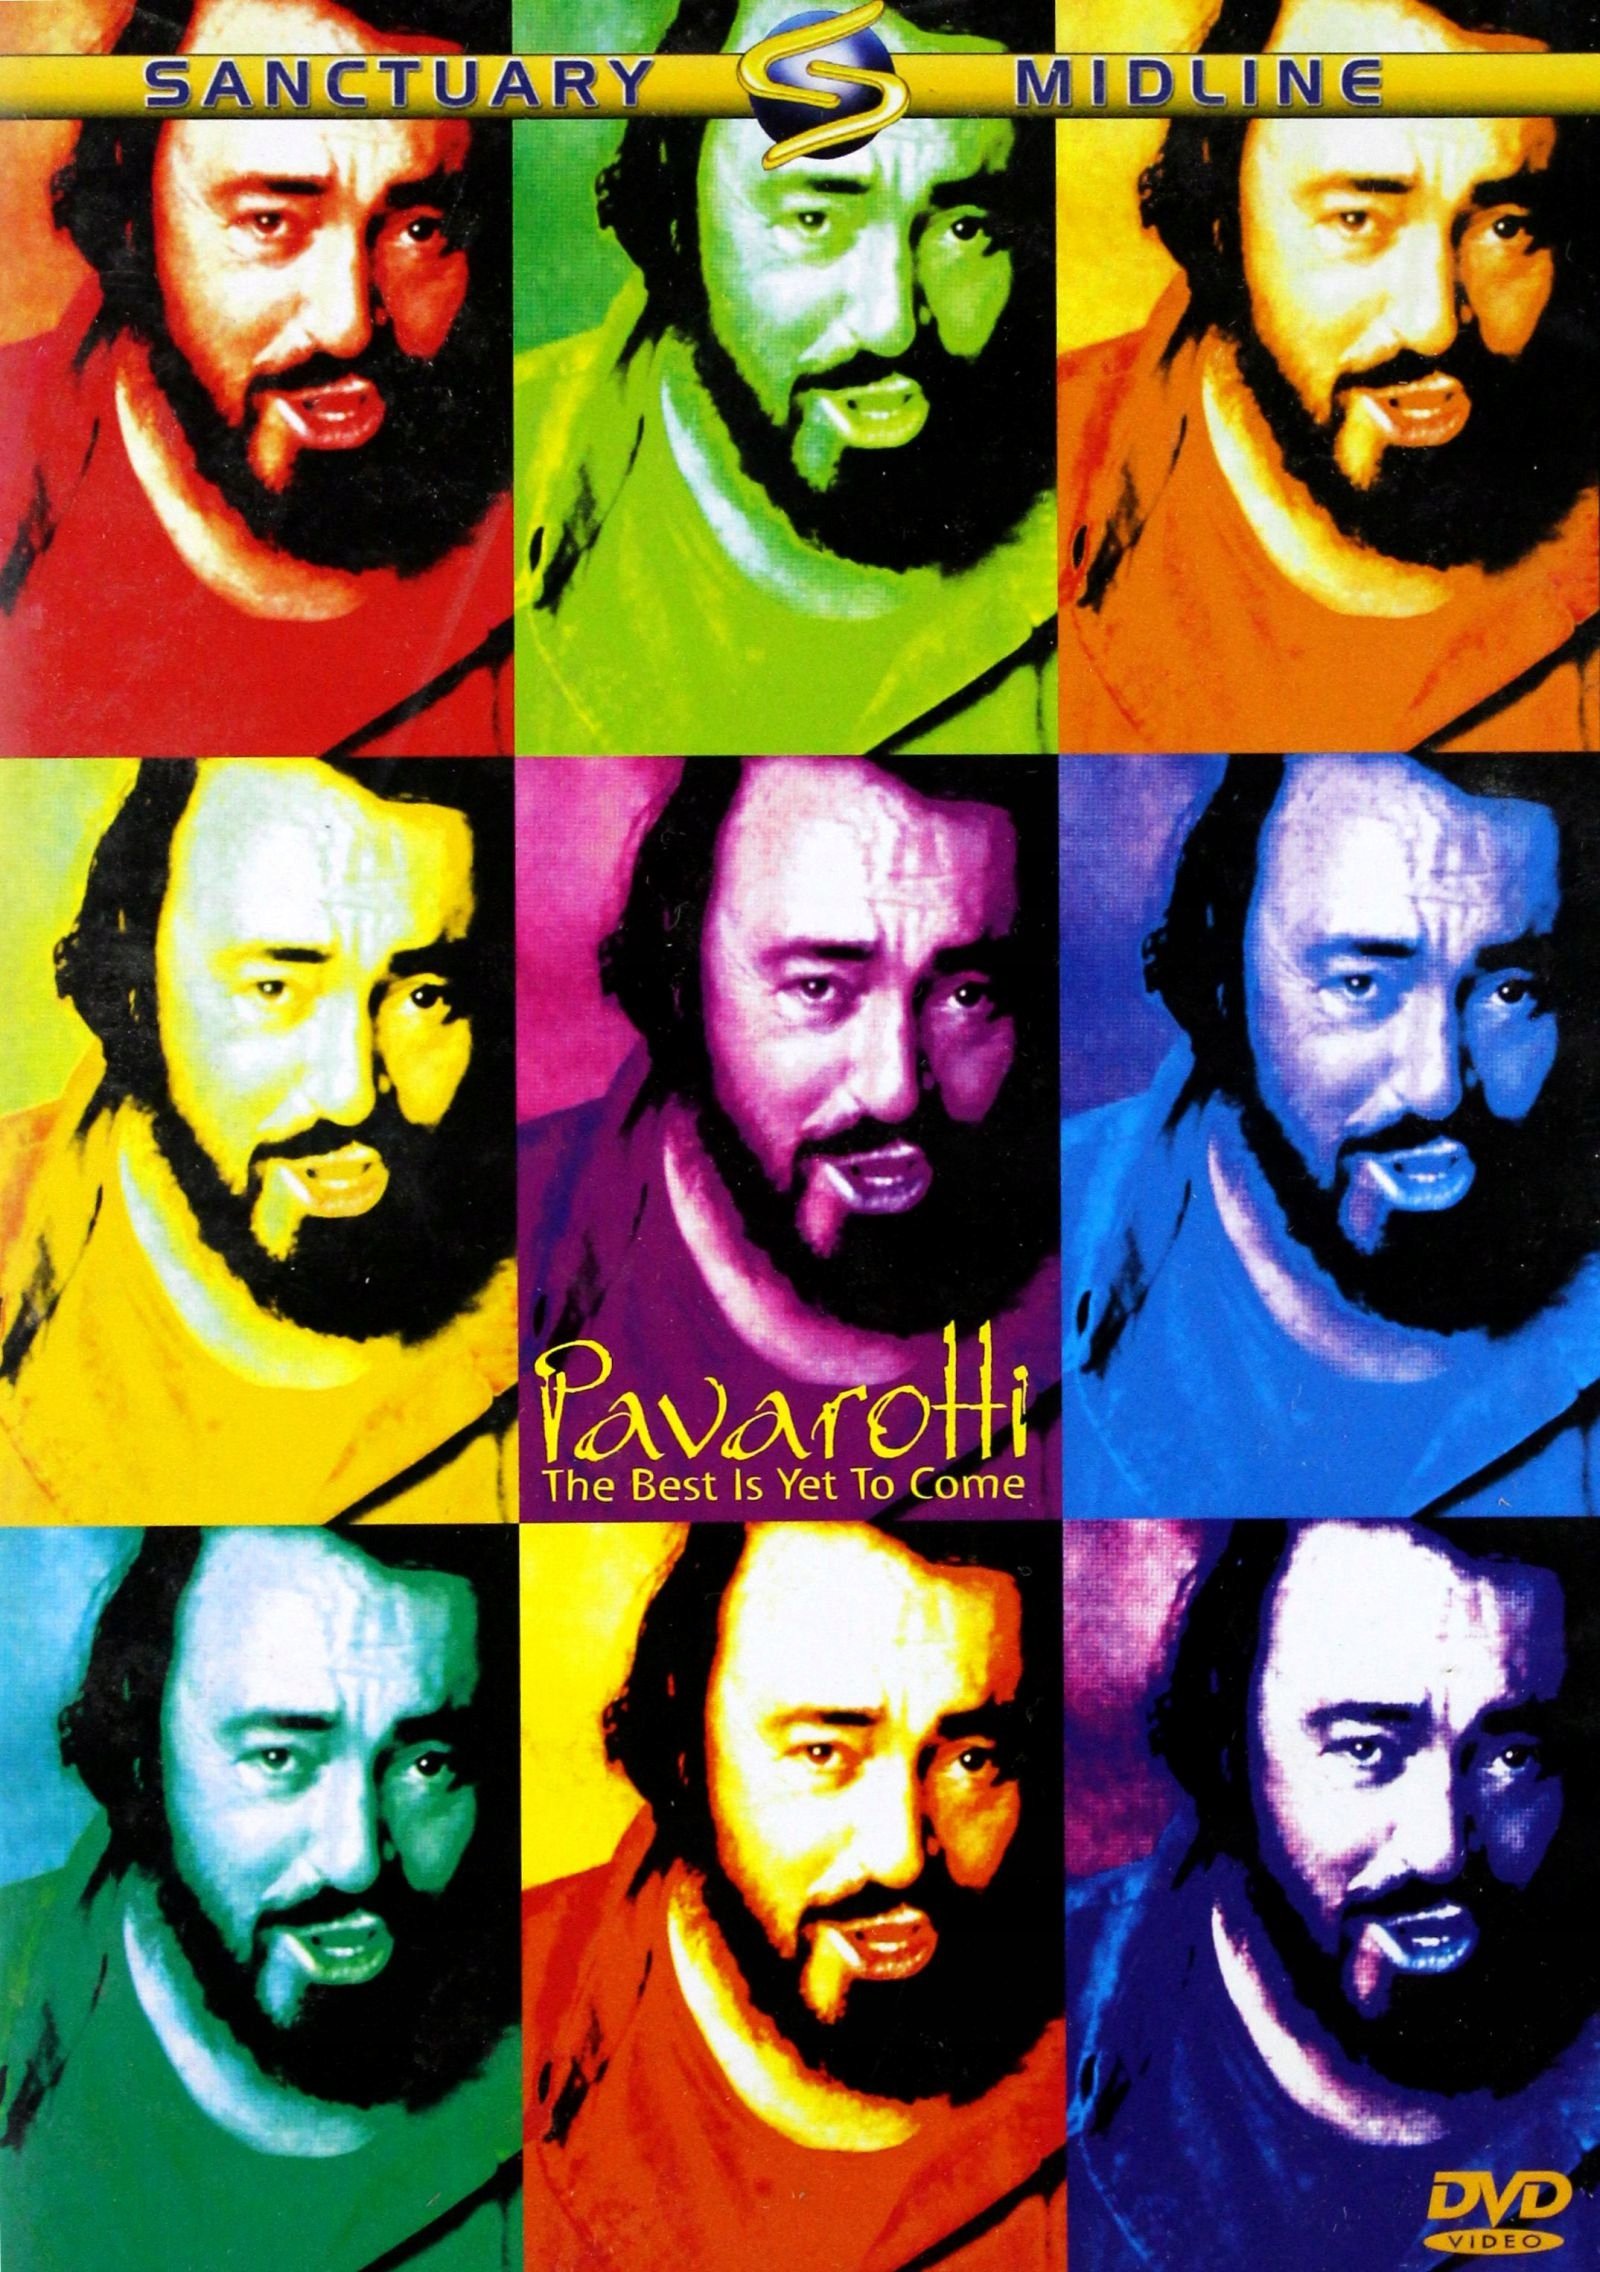 PAVAROTTI LUCIANO: THE BEST IS YET TO COME [DVD]